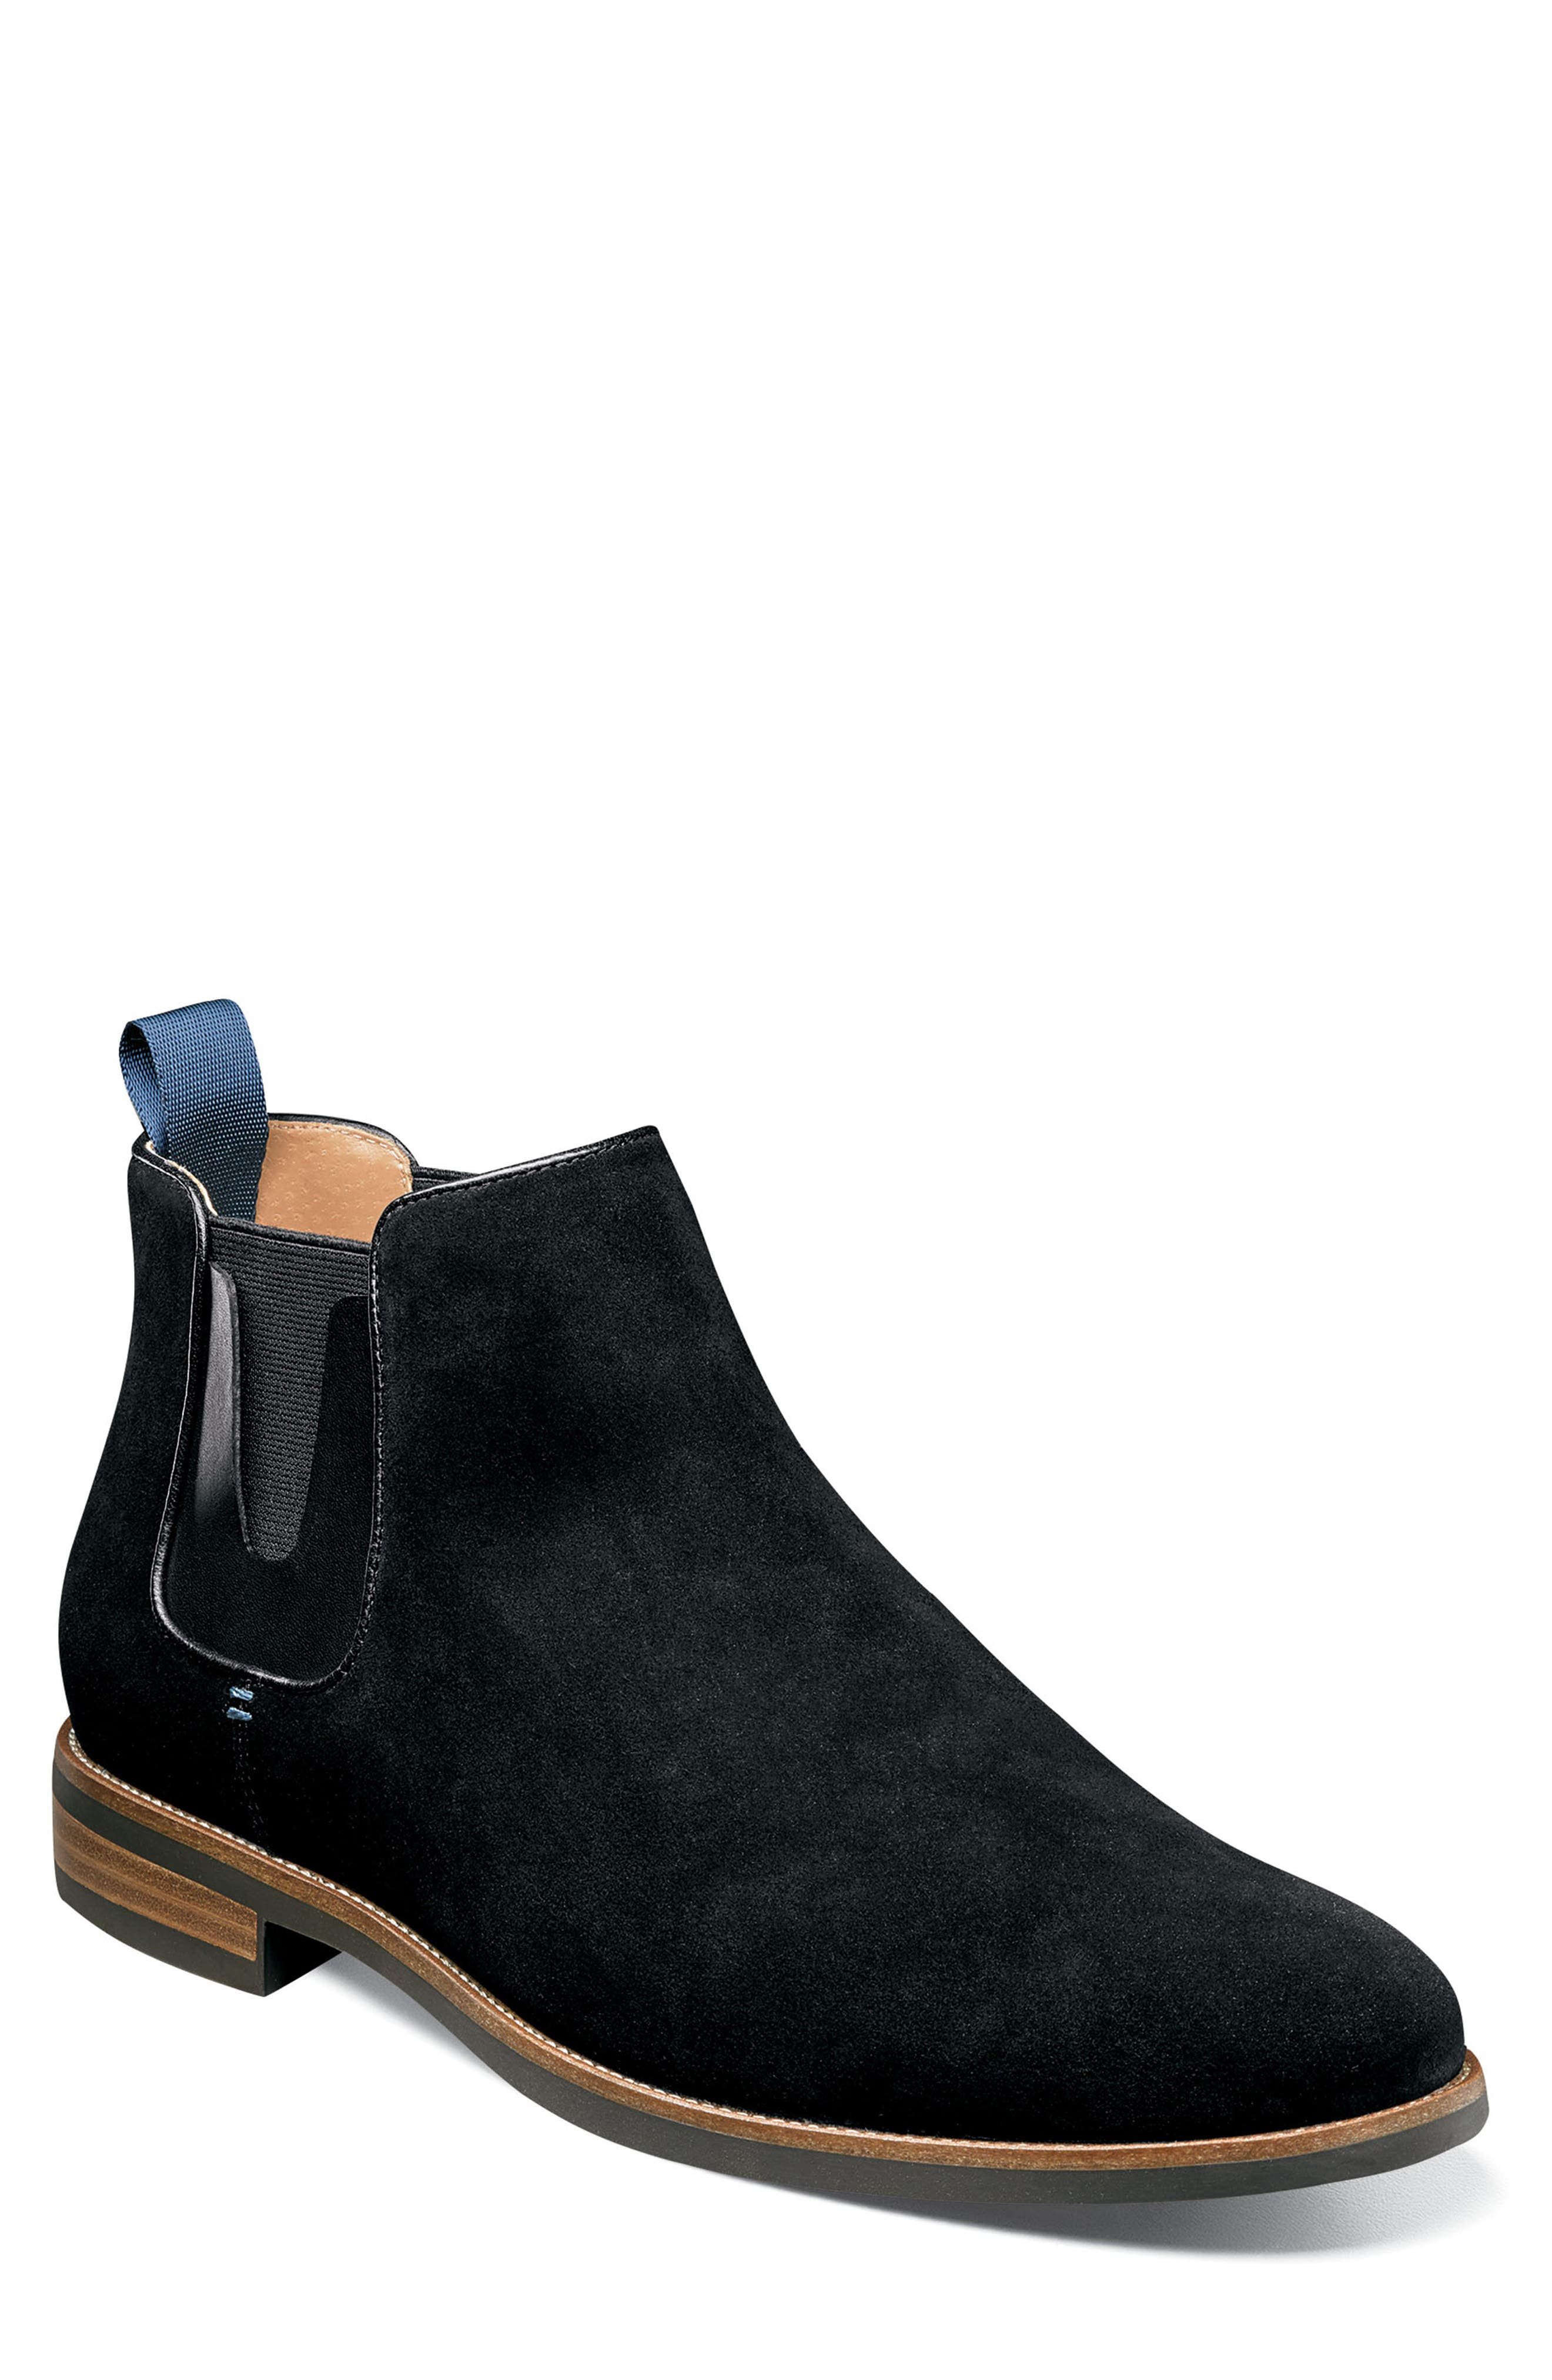 FLORSHEIM Uptown Plain Toe Mid Chelsea Boot in Black Suede